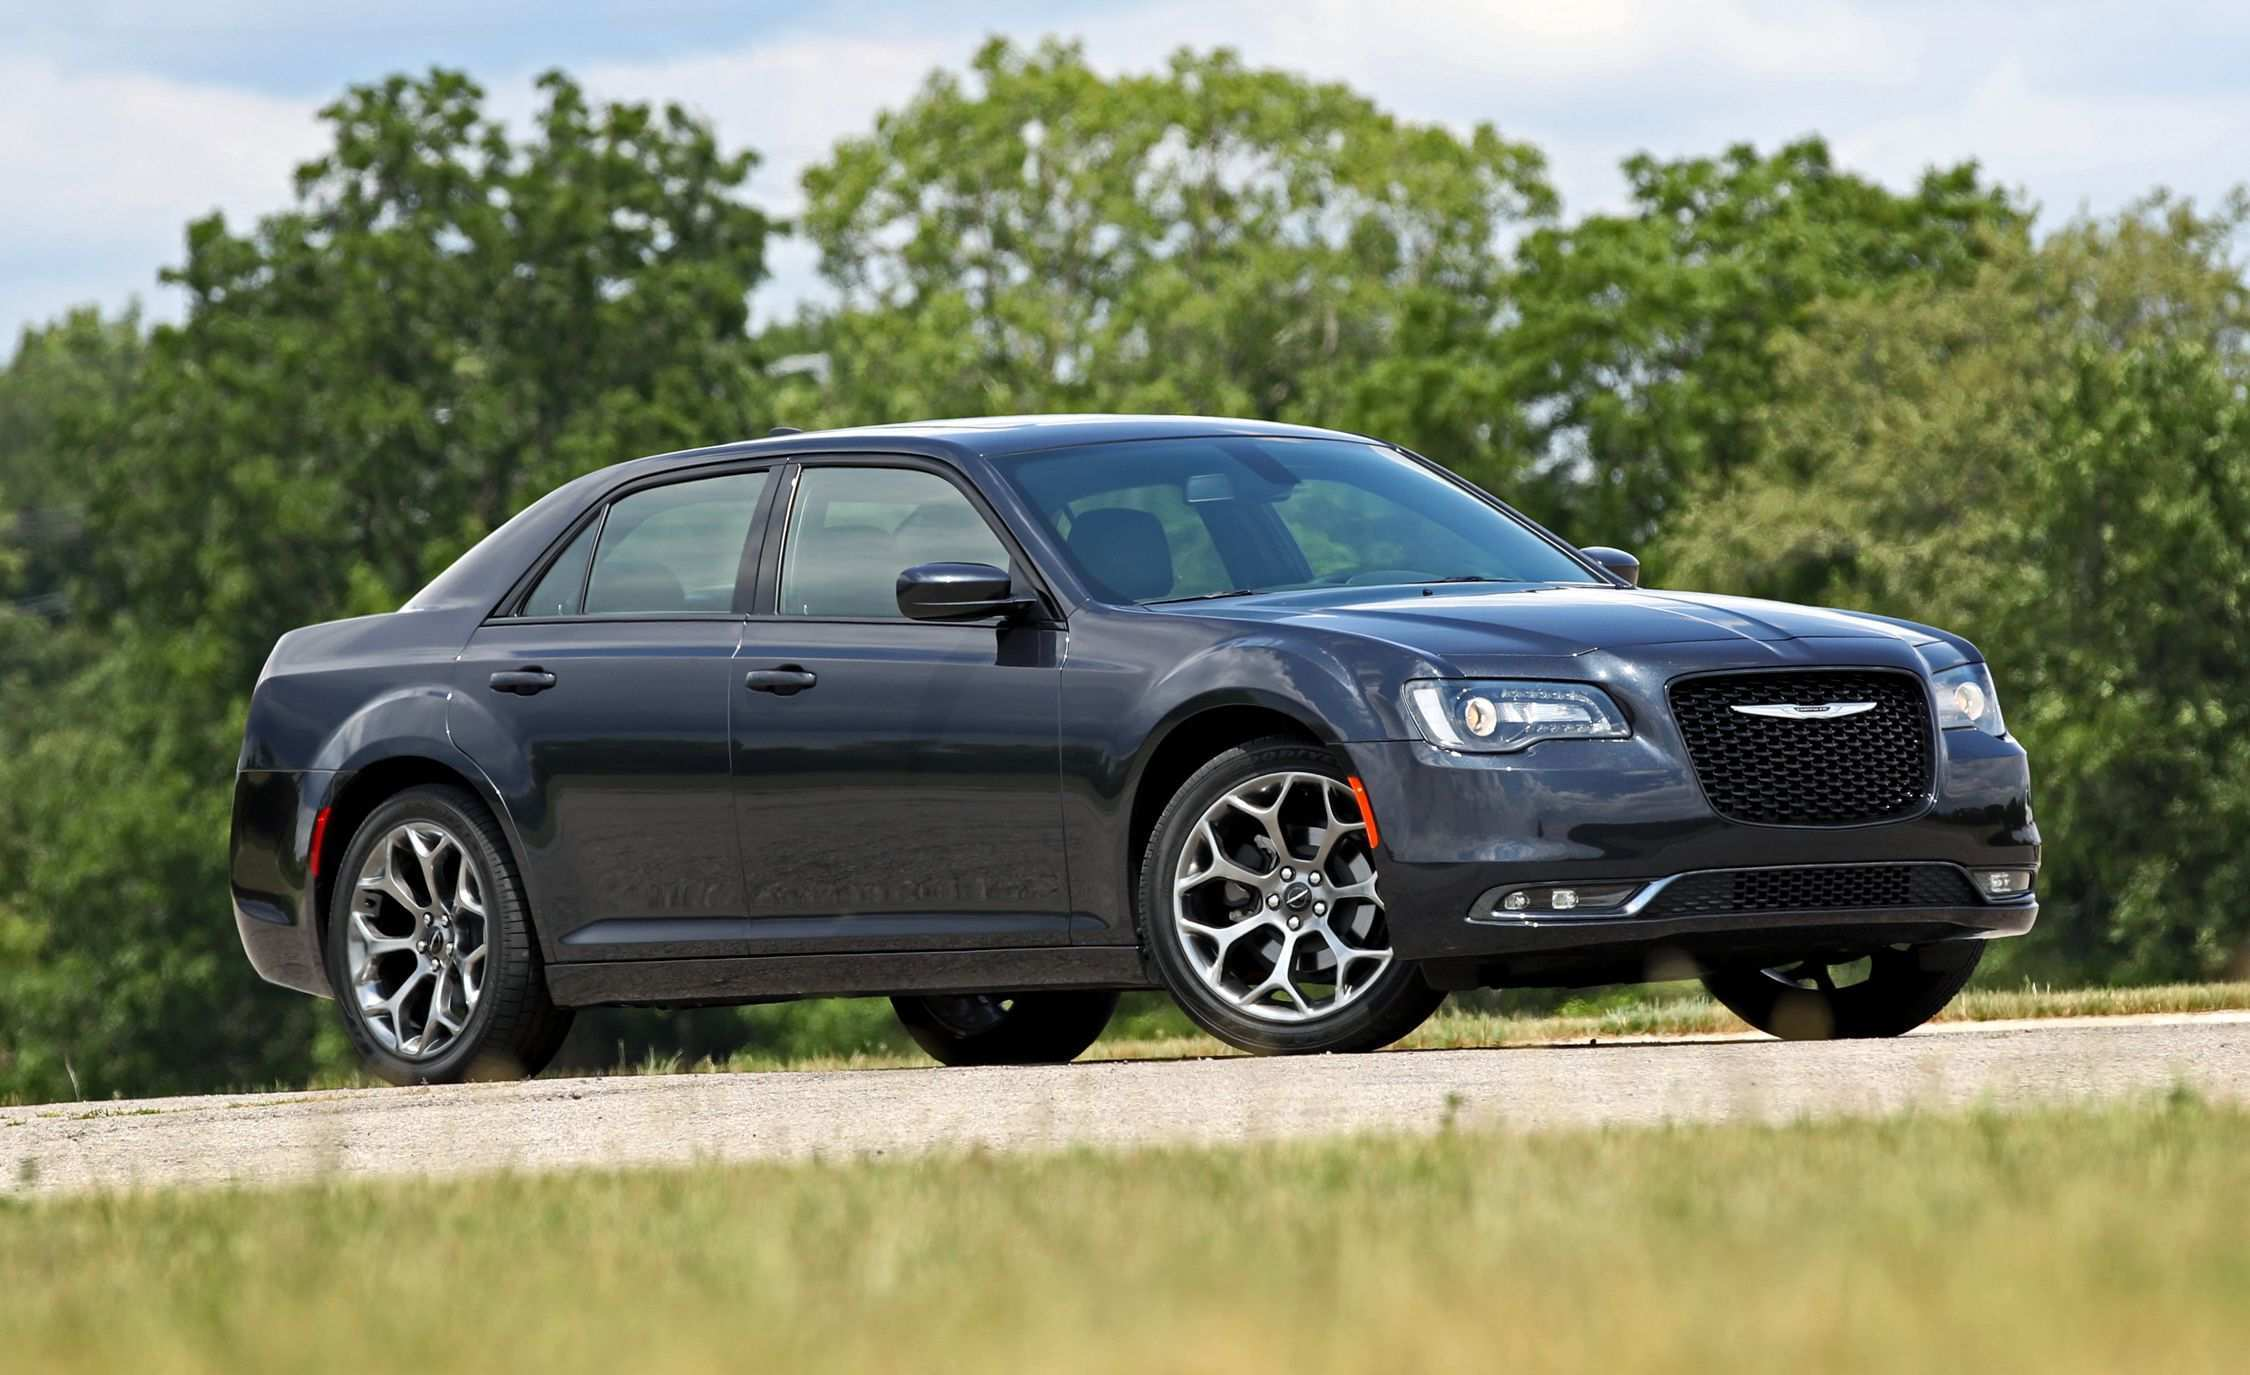 34 Best Review 2019 Chrysler 300 Review Pictures with 2019 Chrysler 300 Review